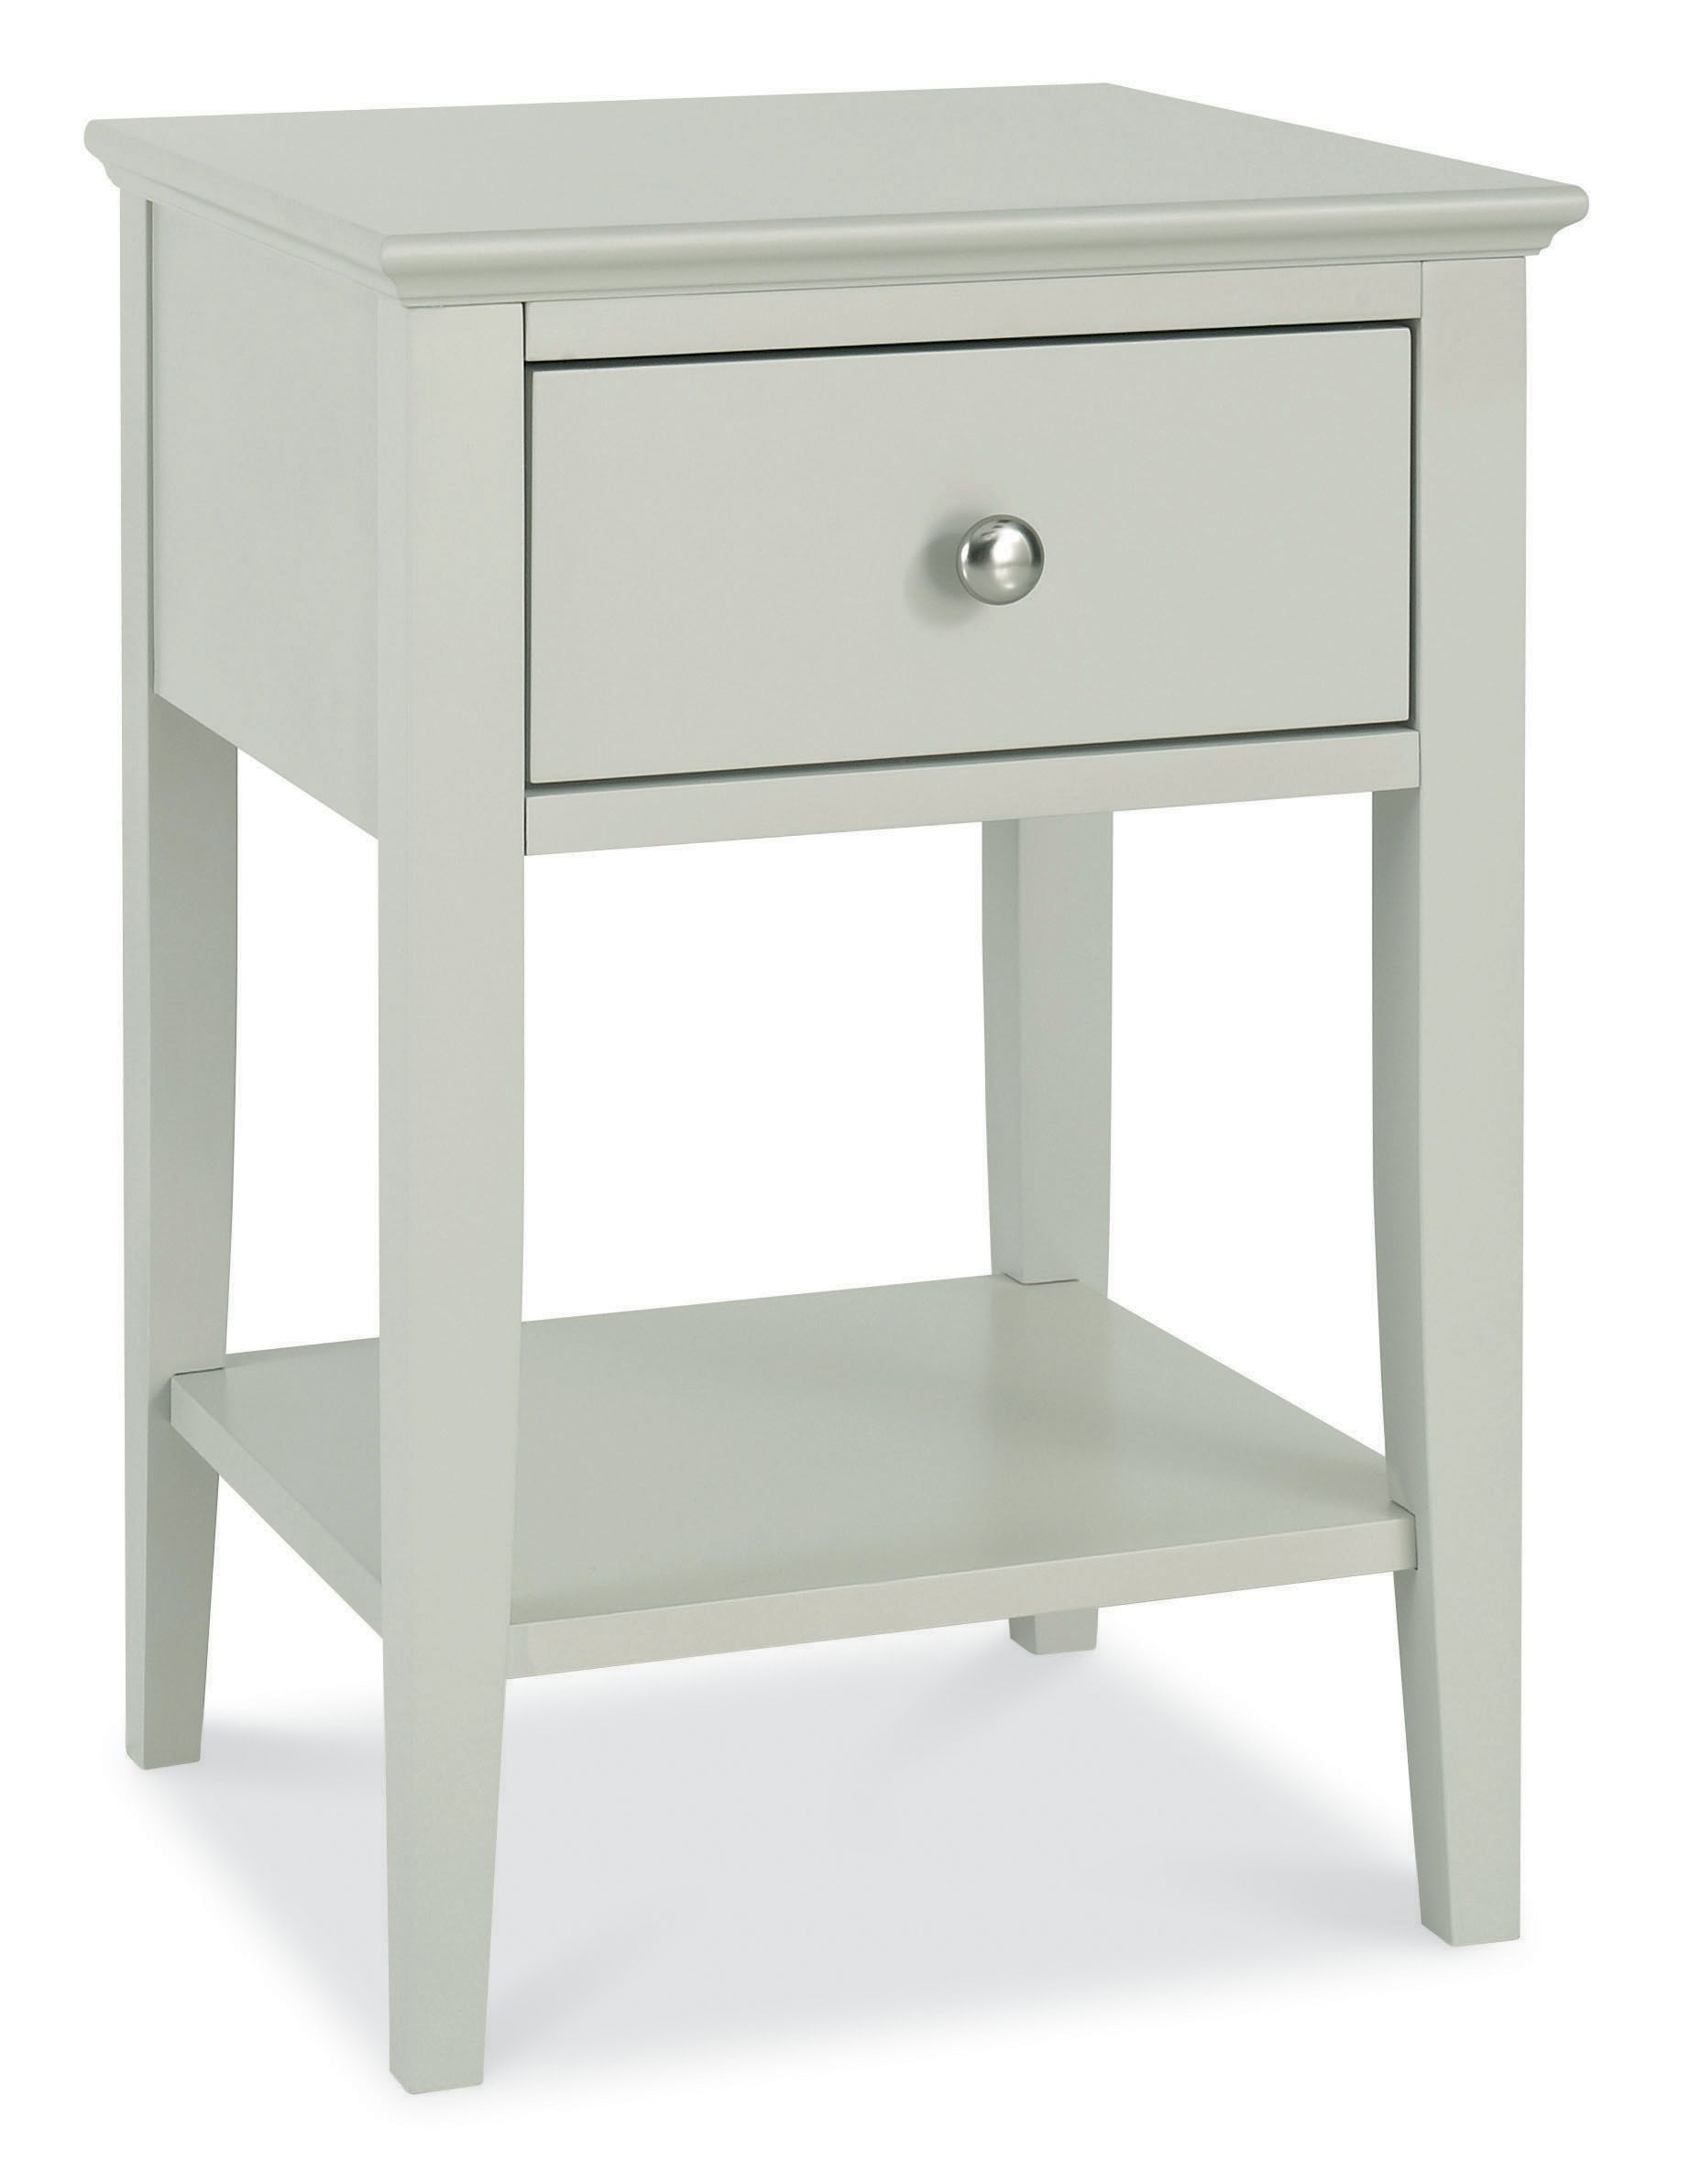 Cotton 1 drawer bedside chest